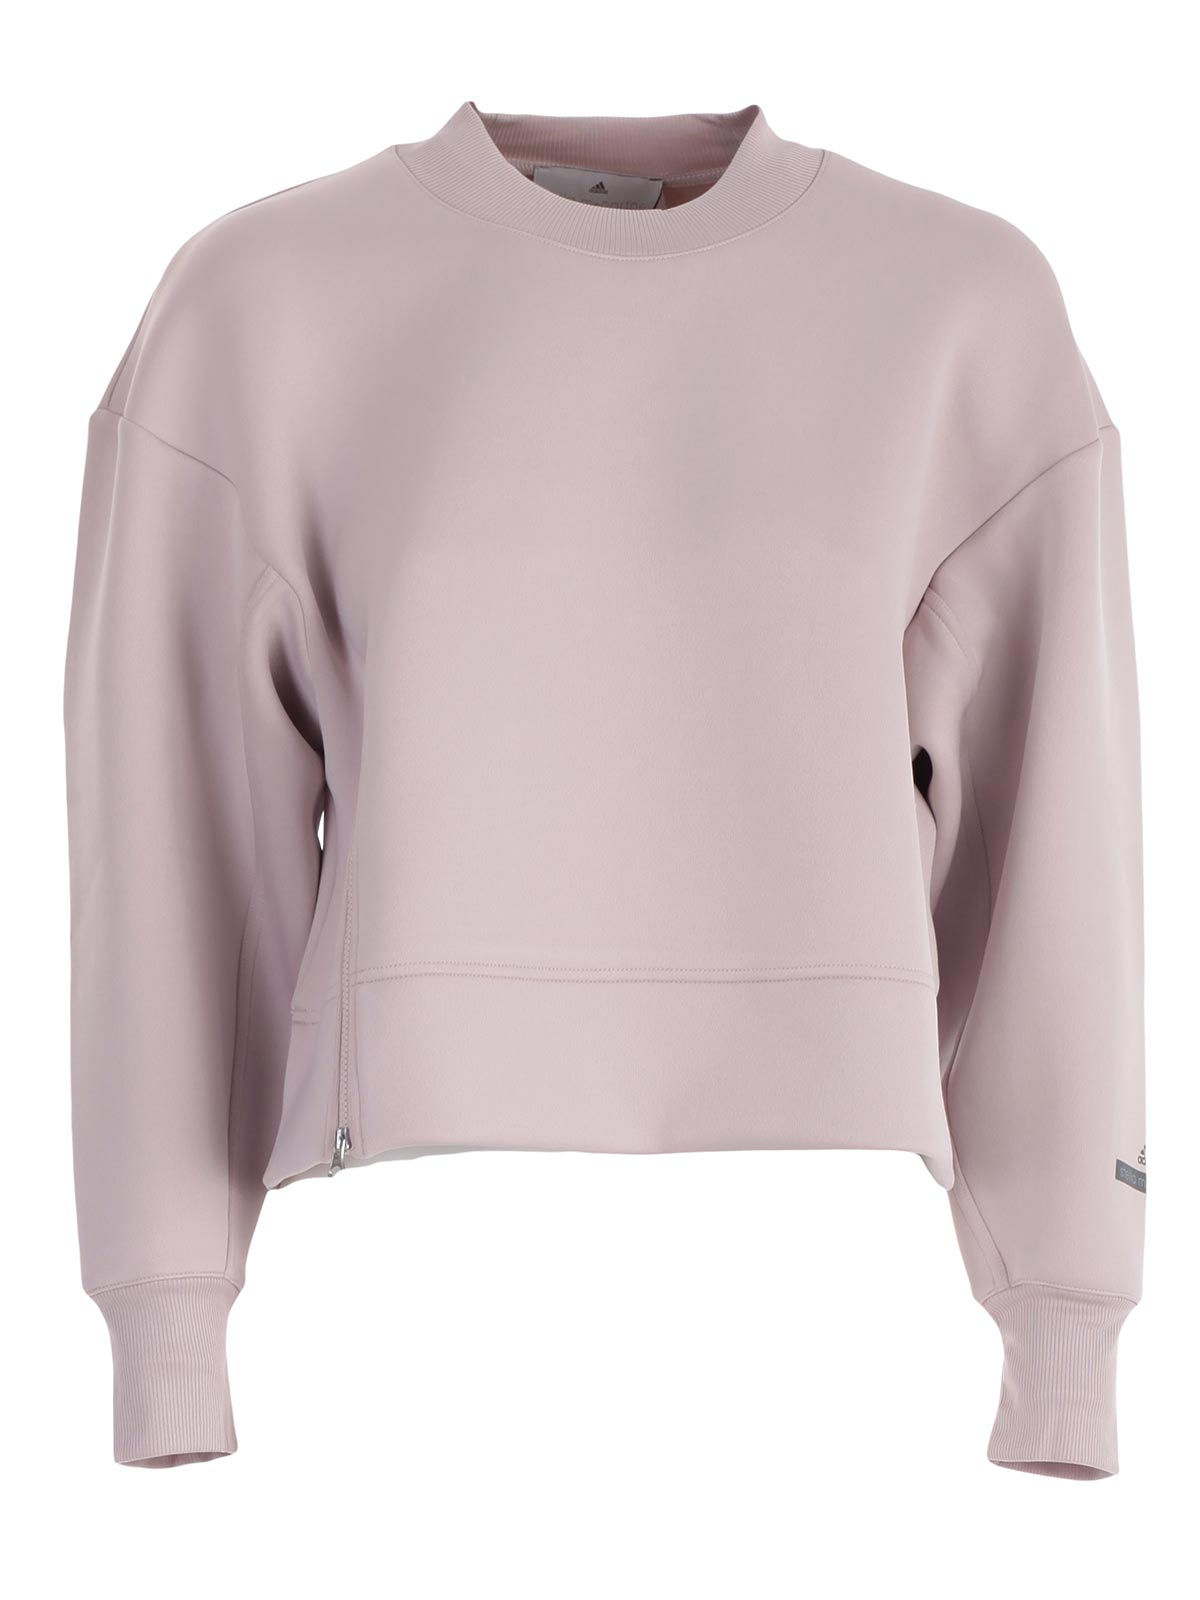 Picture of ADIDAS BY STELLA MCCARTNEY SweatShirt